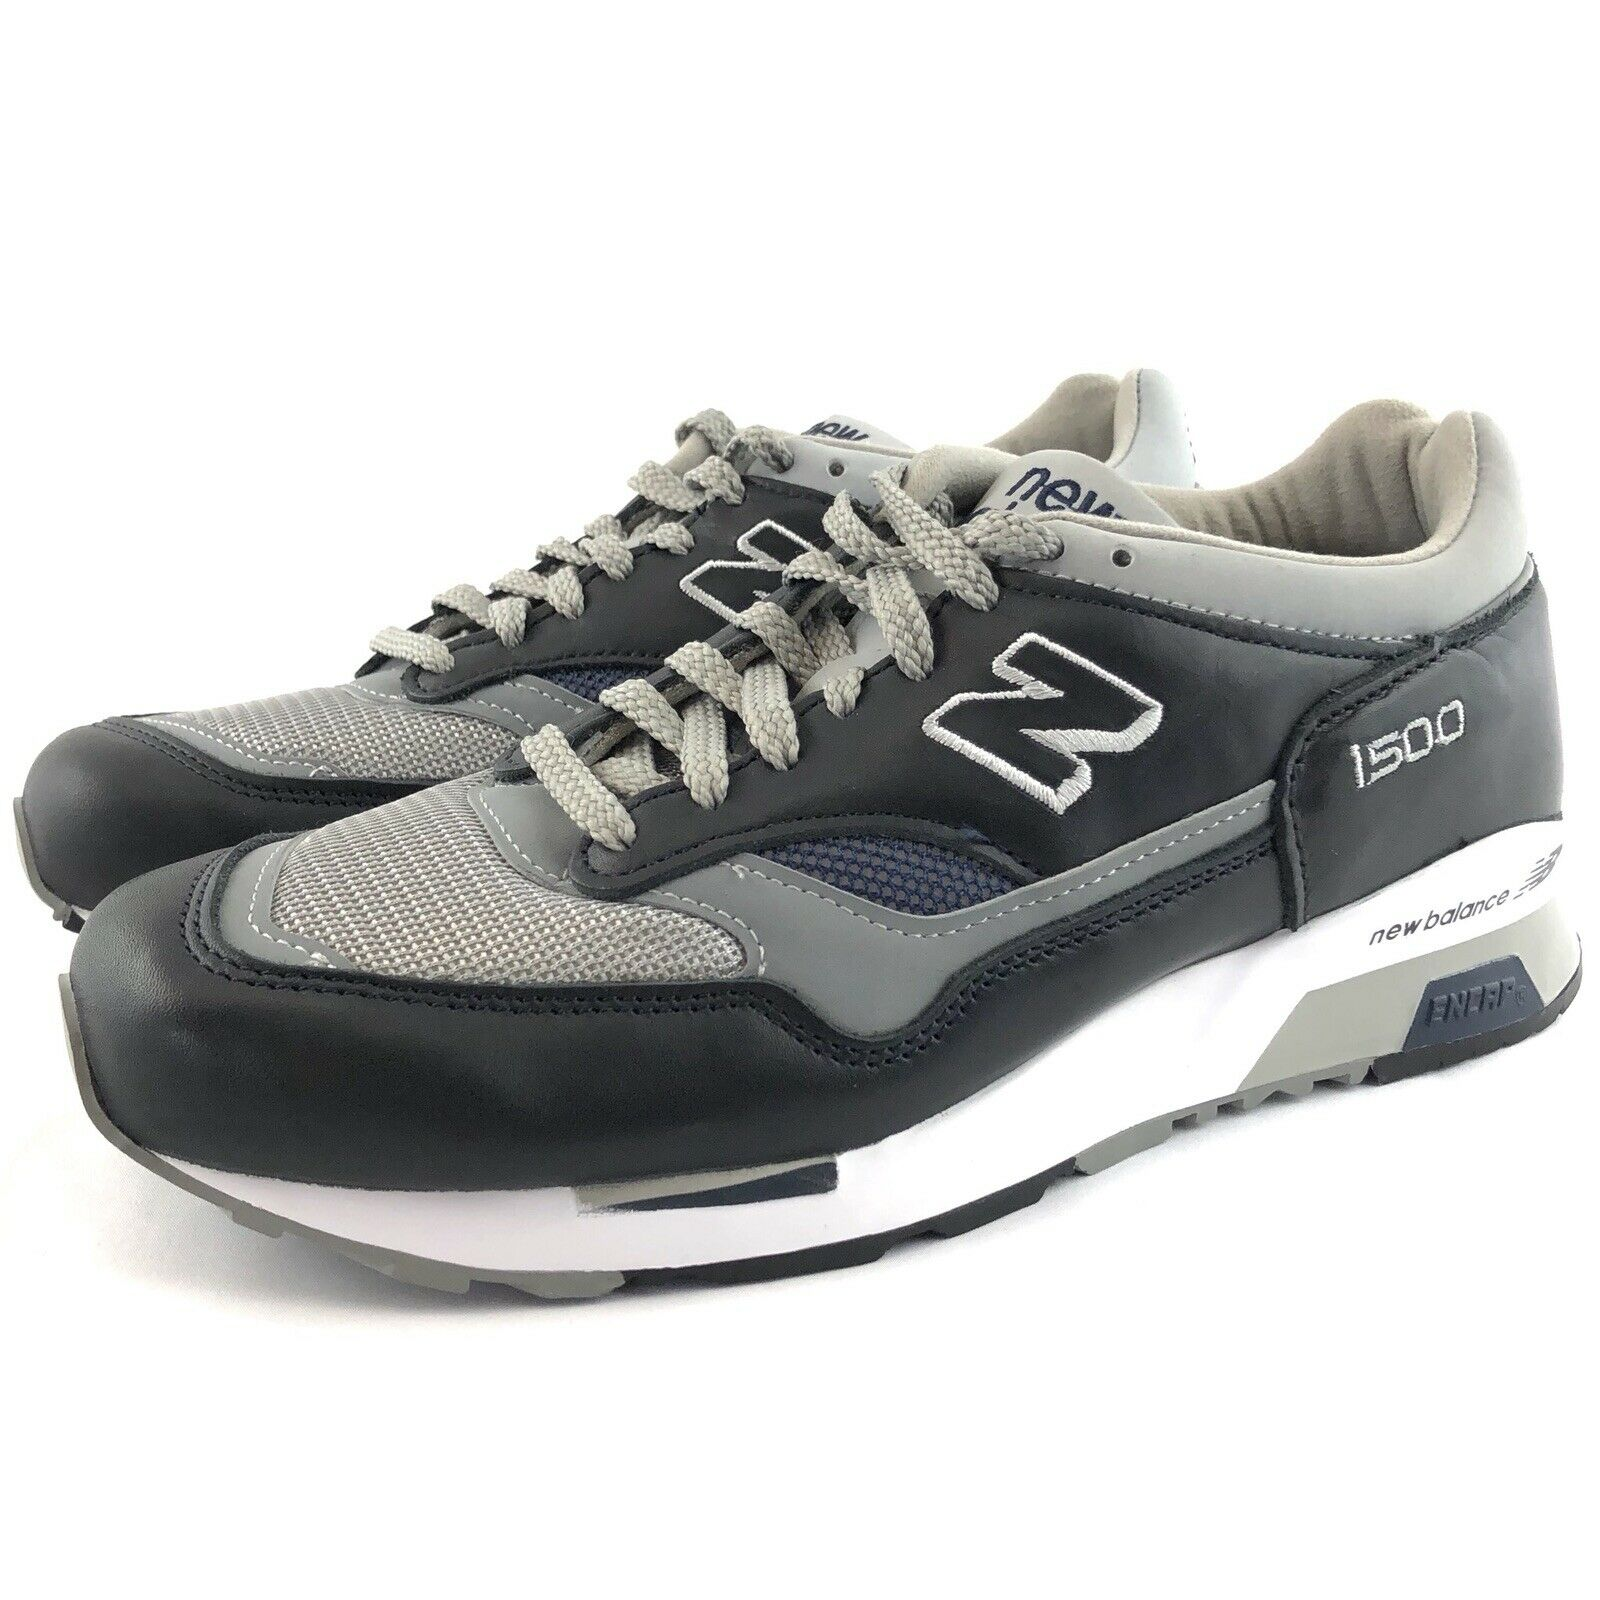 New Balance 1500 M1500UC Athletic shoes Mens Size 8 Made In England Leather